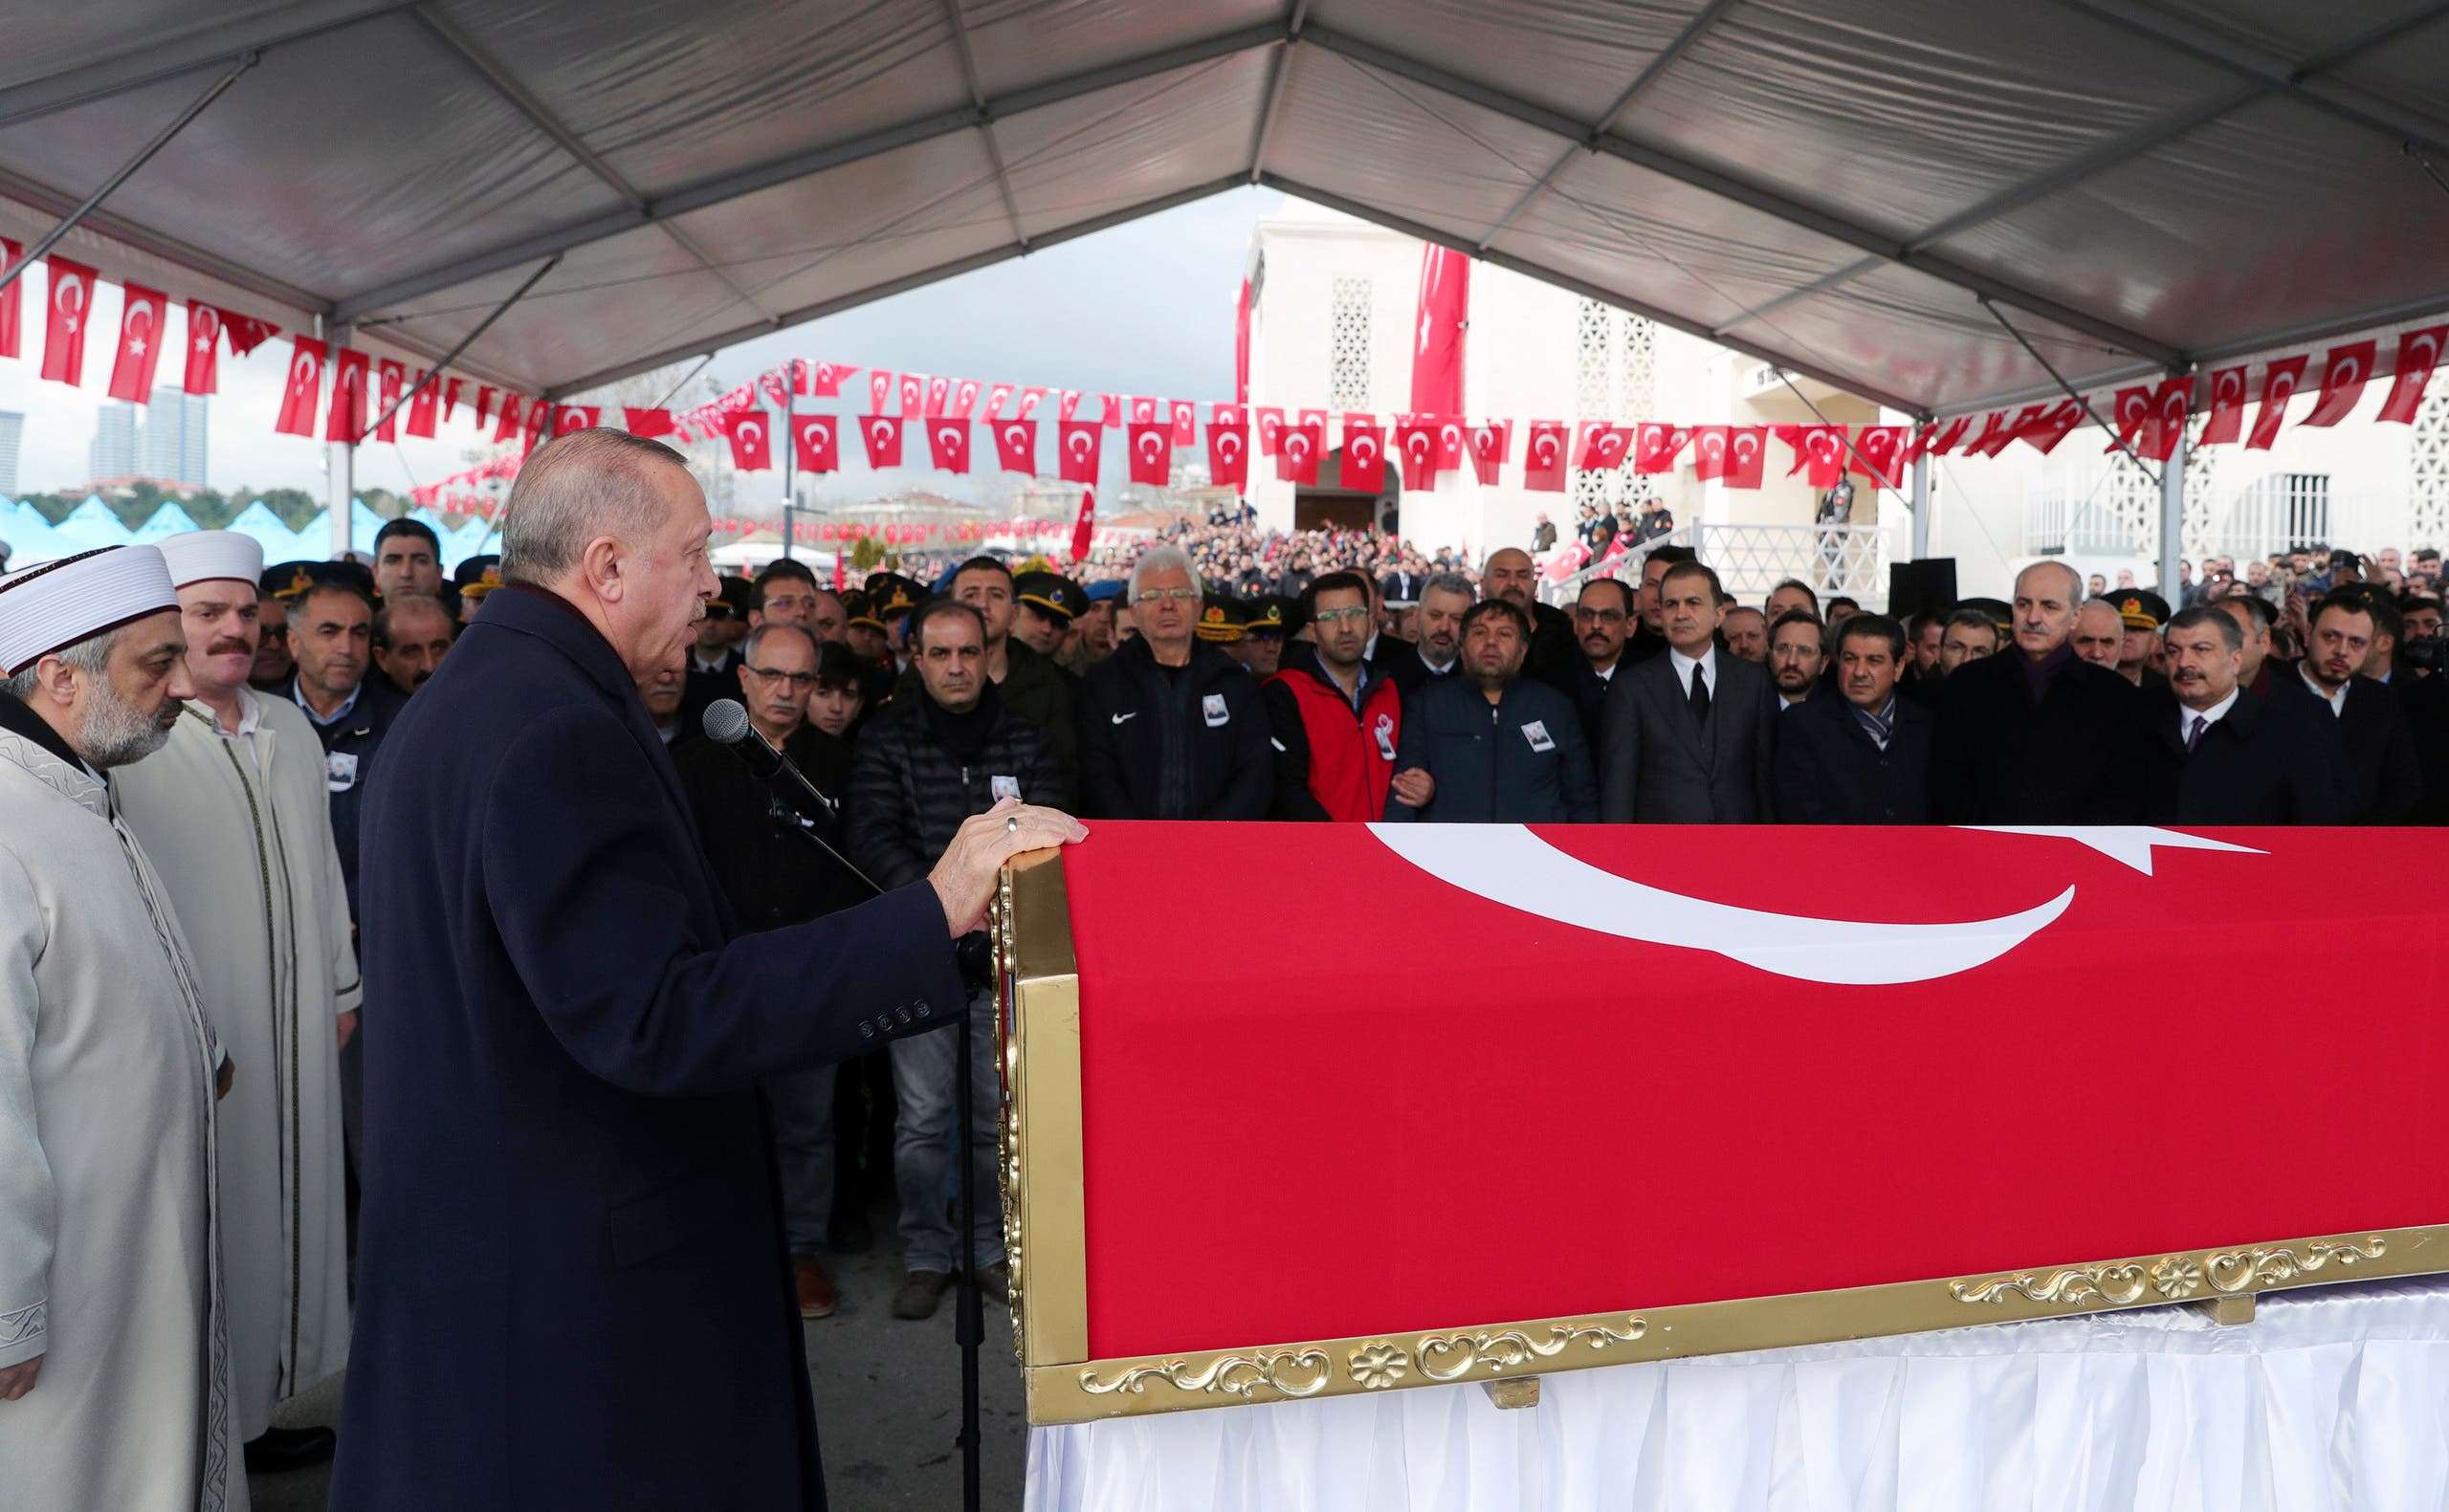 Turkey's President Recep Tayyip Erdogan speaks during funeral prayers for Emre Baysal, one the 36 Turkish soldiers killed on Thursday in a Syrian army attack in the Idlib area of Syria, in Istanbul on Feb. 29, 2020. (AP)